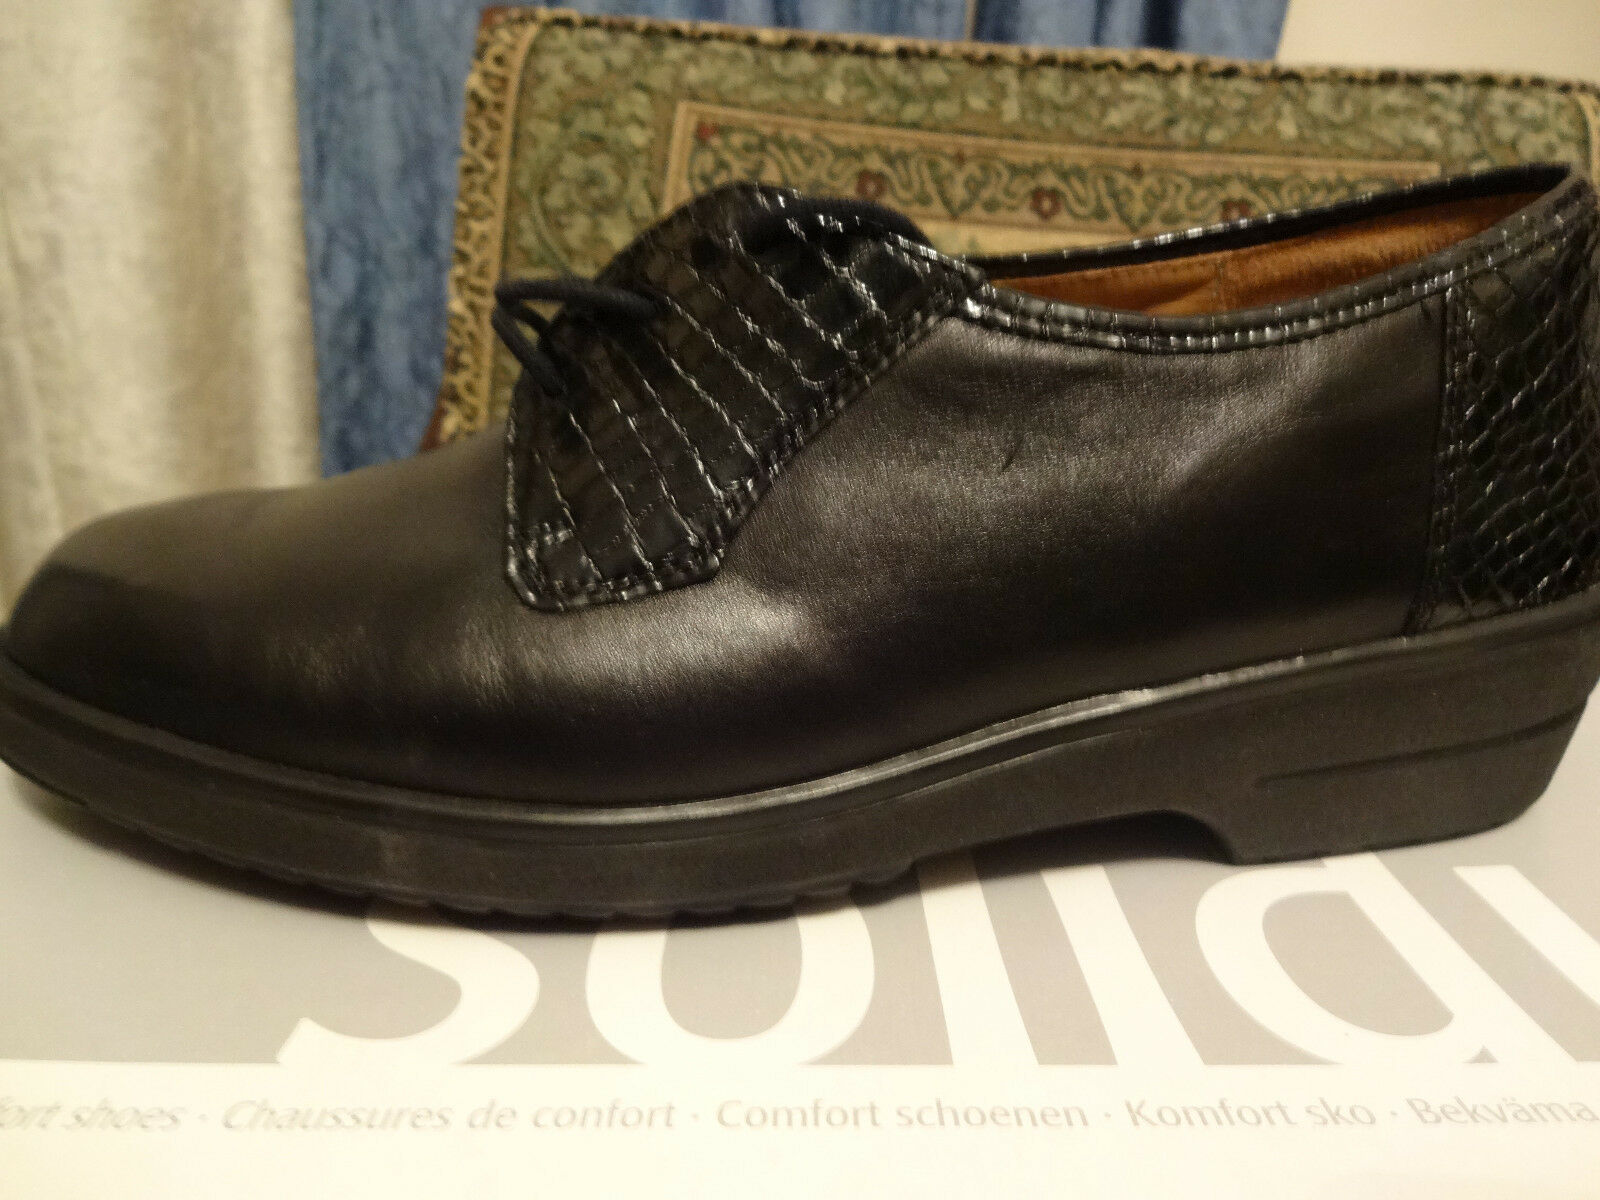 SOLIDUS, Betti, BLACK, LACE UP, OXFORD, COMFORT, SHOES, US 7 Medium